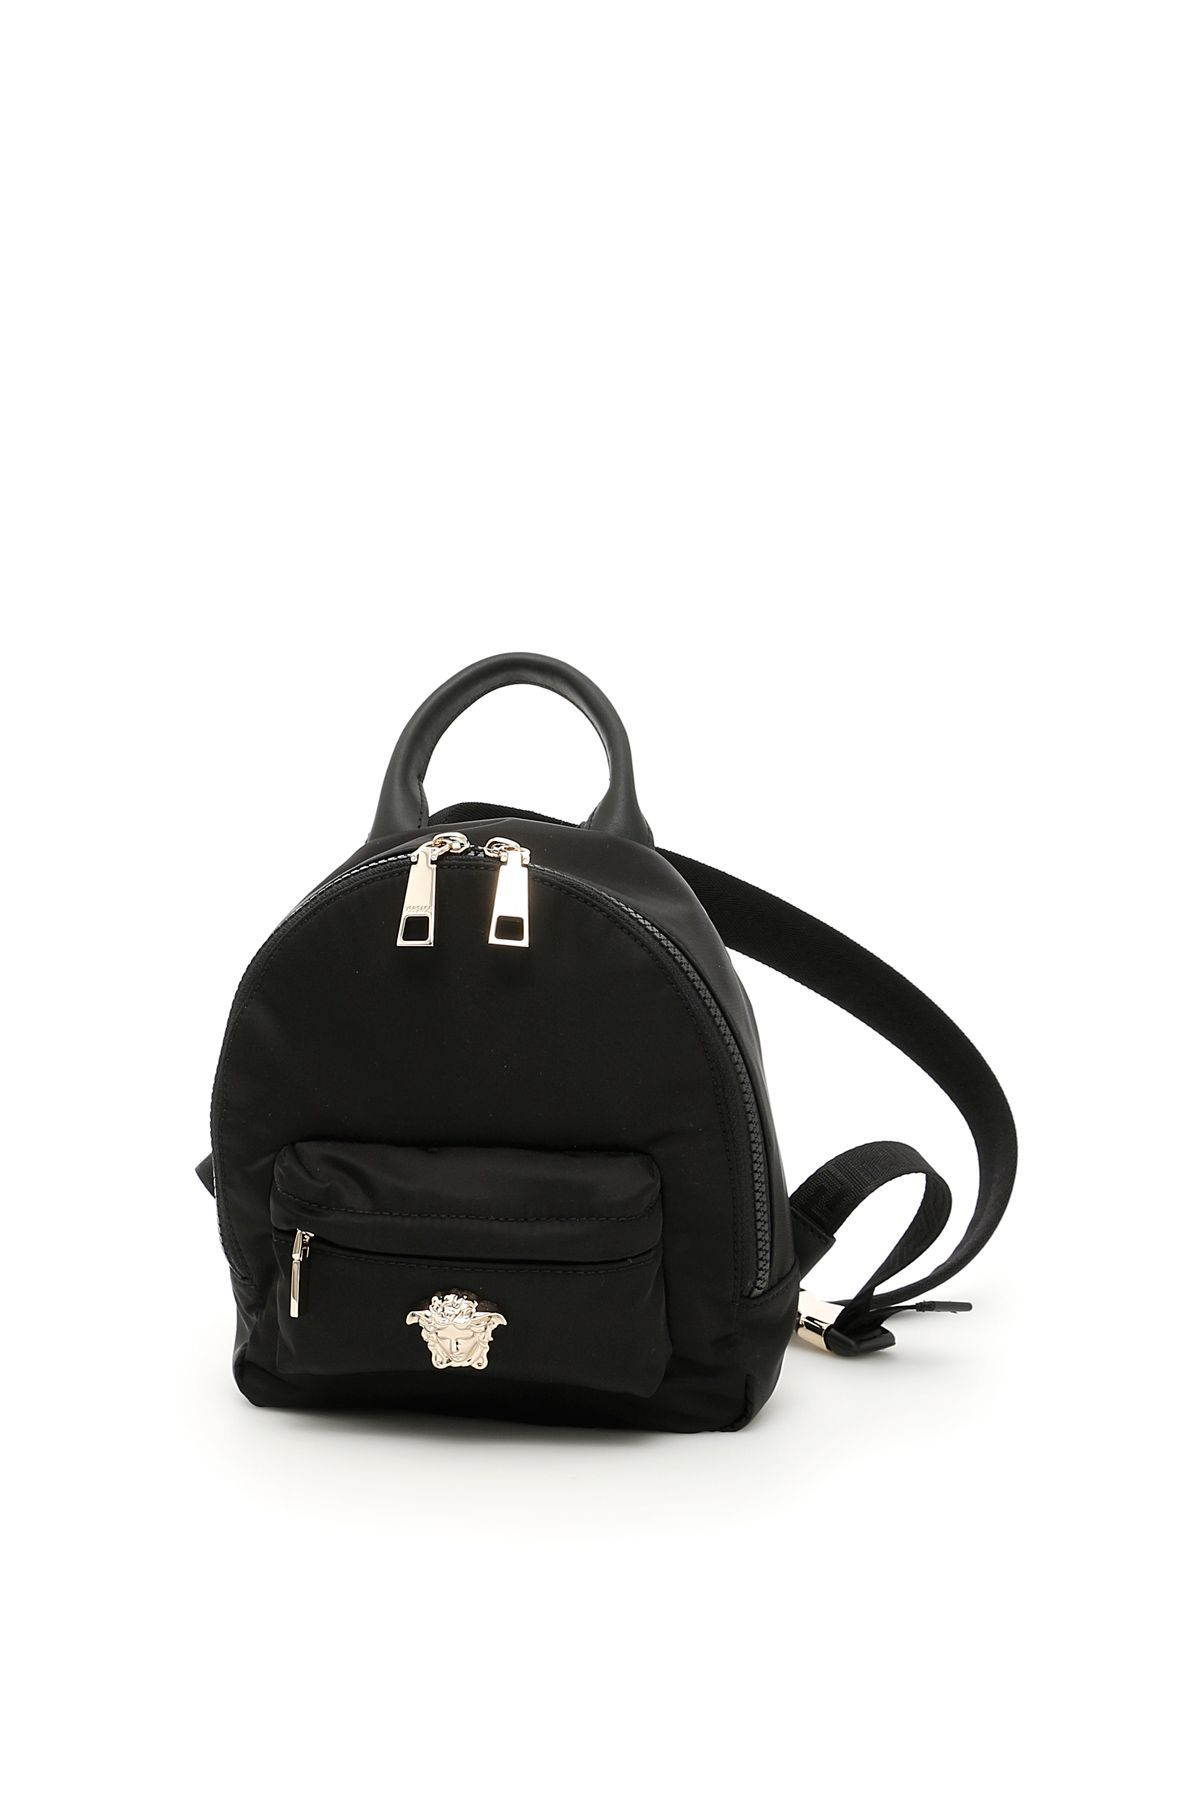 5c71656fdf8 VERSACE NYLON PALAZZO MINI BACKPACK. #versace #bags #leather #lining #nylon  #backpacks #